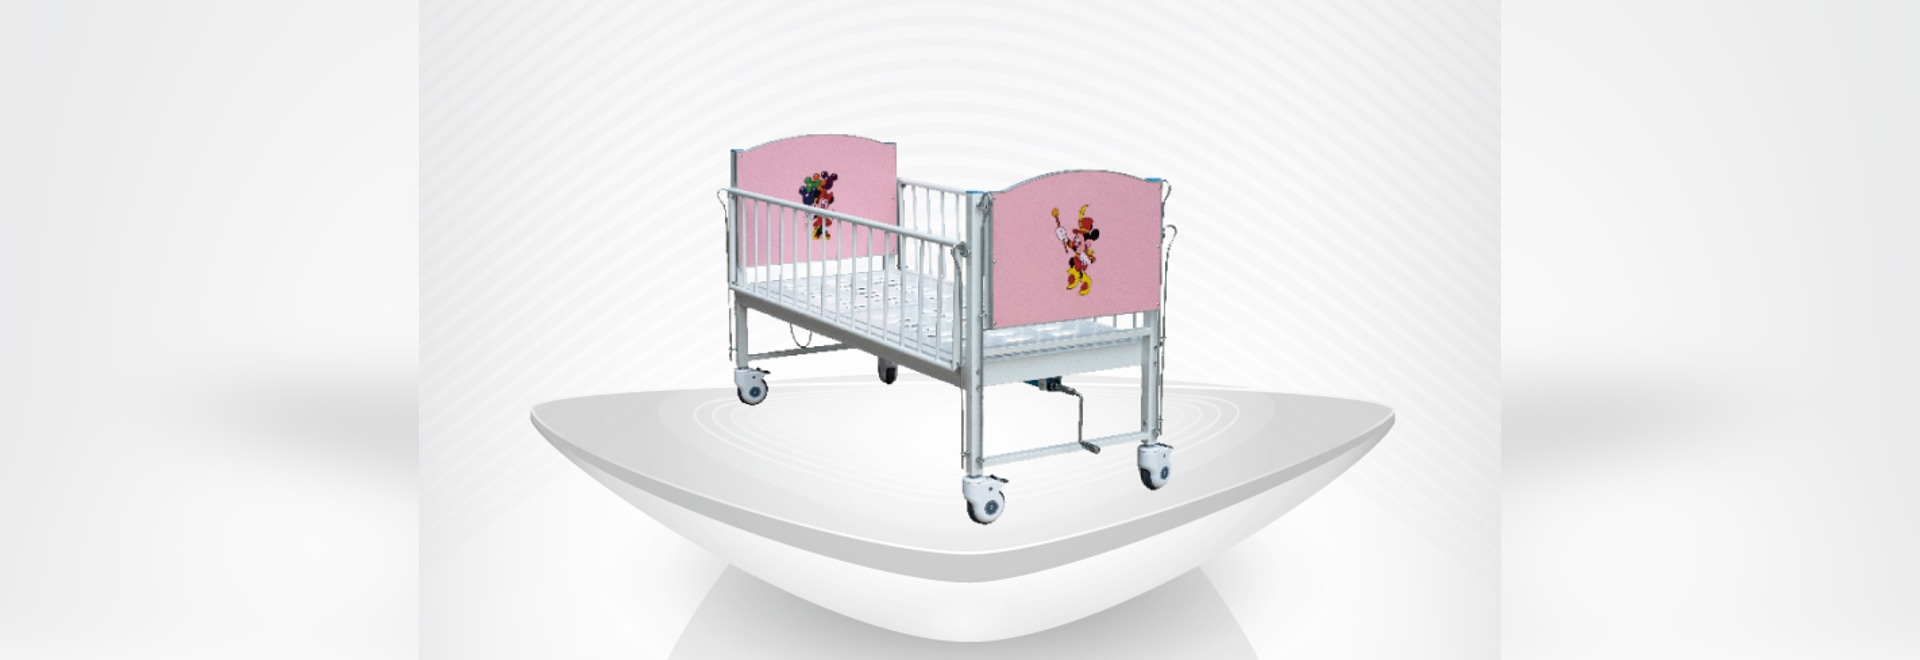 2016 new Pediatric / baby Bed / hospital bed / children / well protect